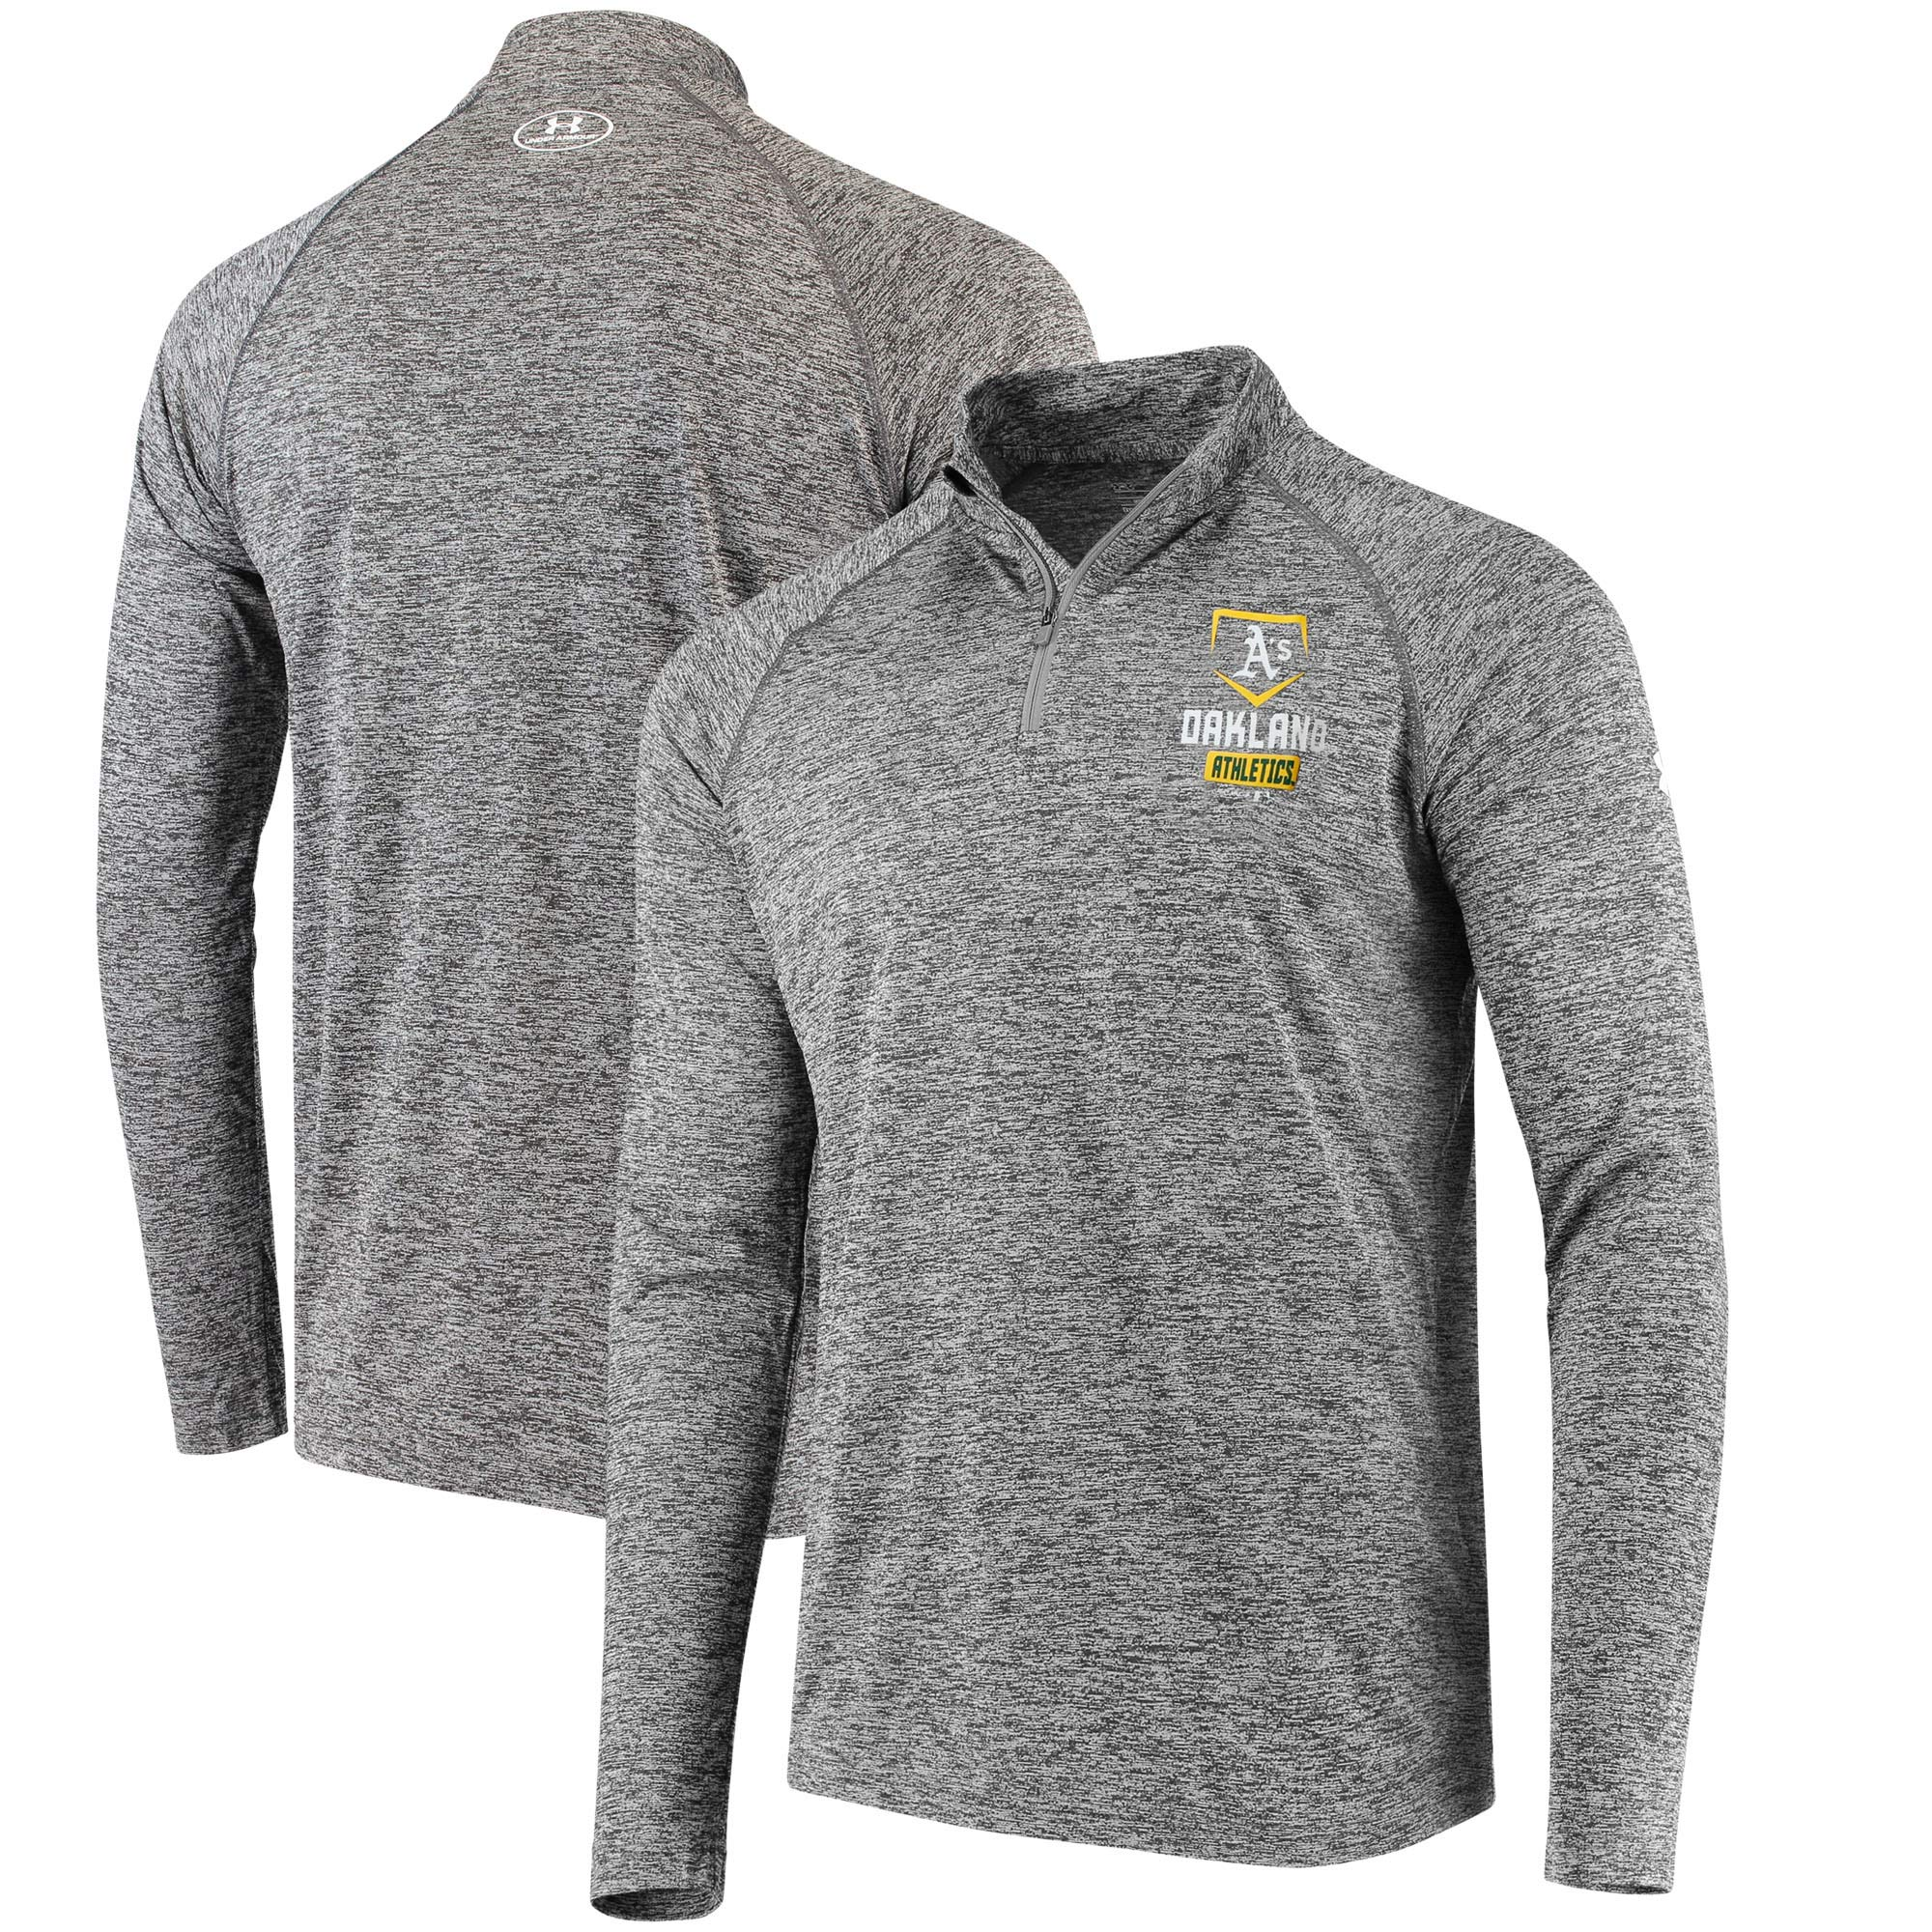 Oakland Athletics Under Armour Tech Quarter-Zip Performance Pullover - Charcoal